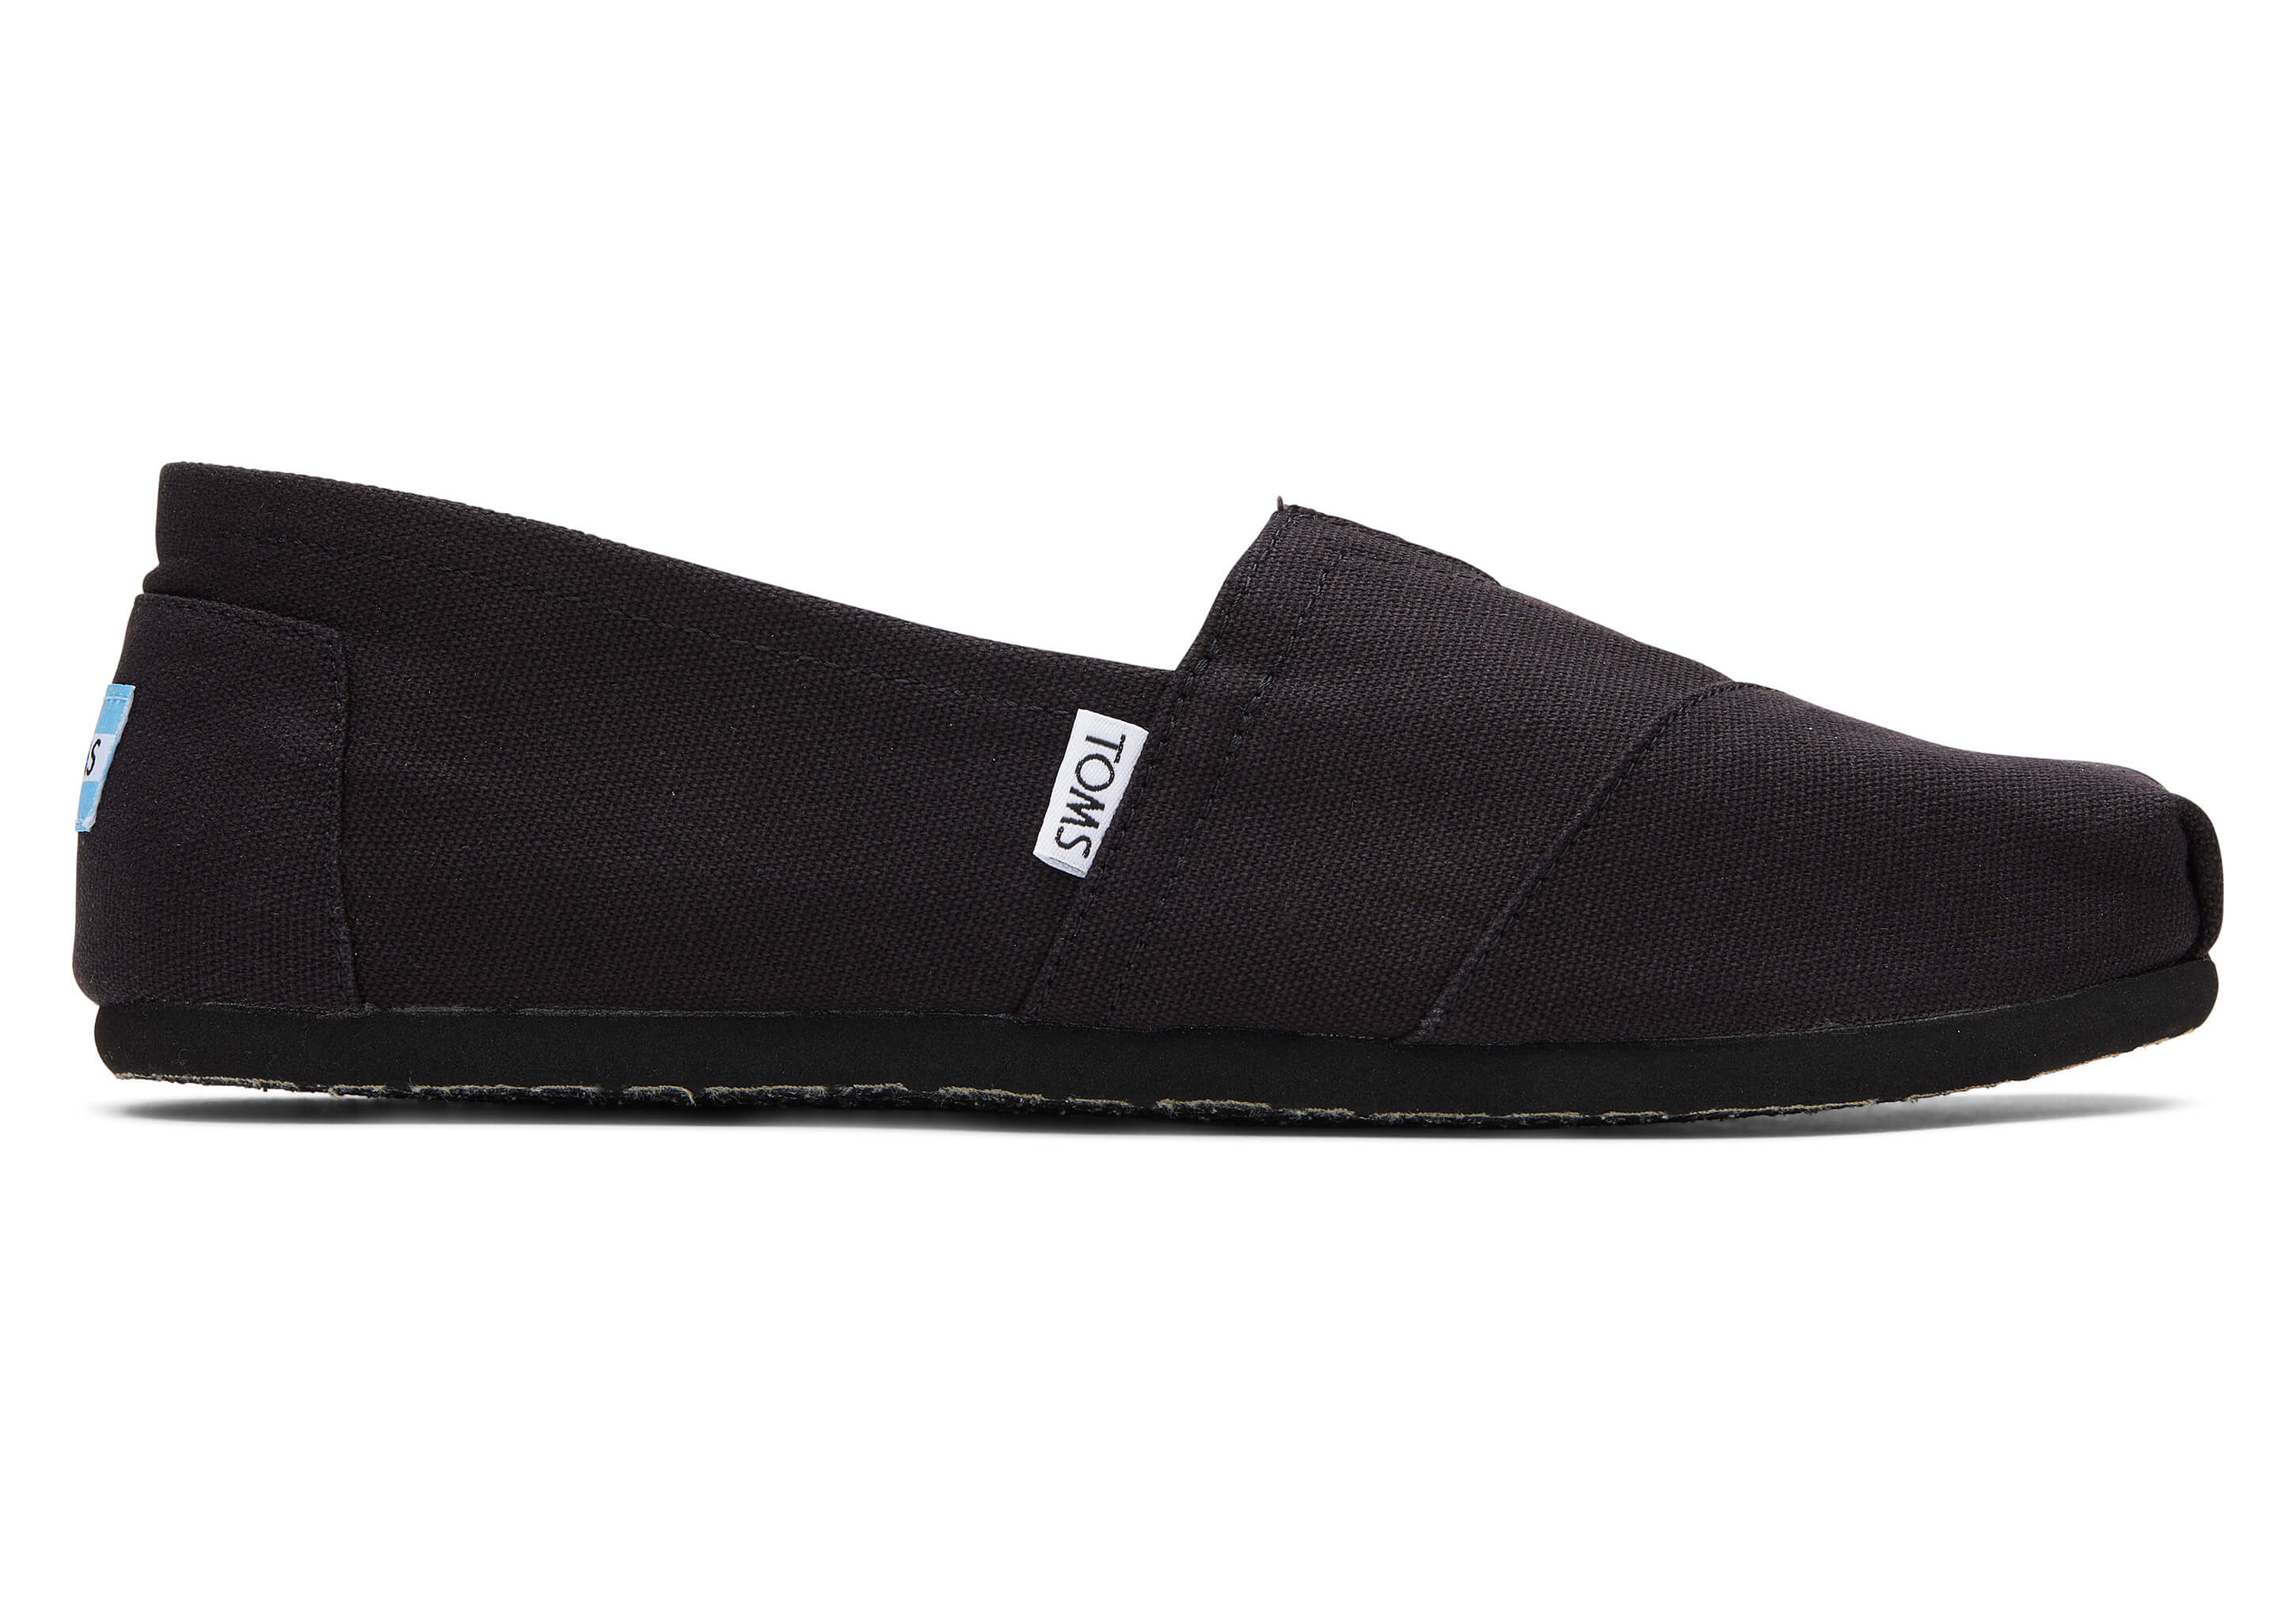 toms Rood Canvas Voor Heren Espadrilles Black on Black